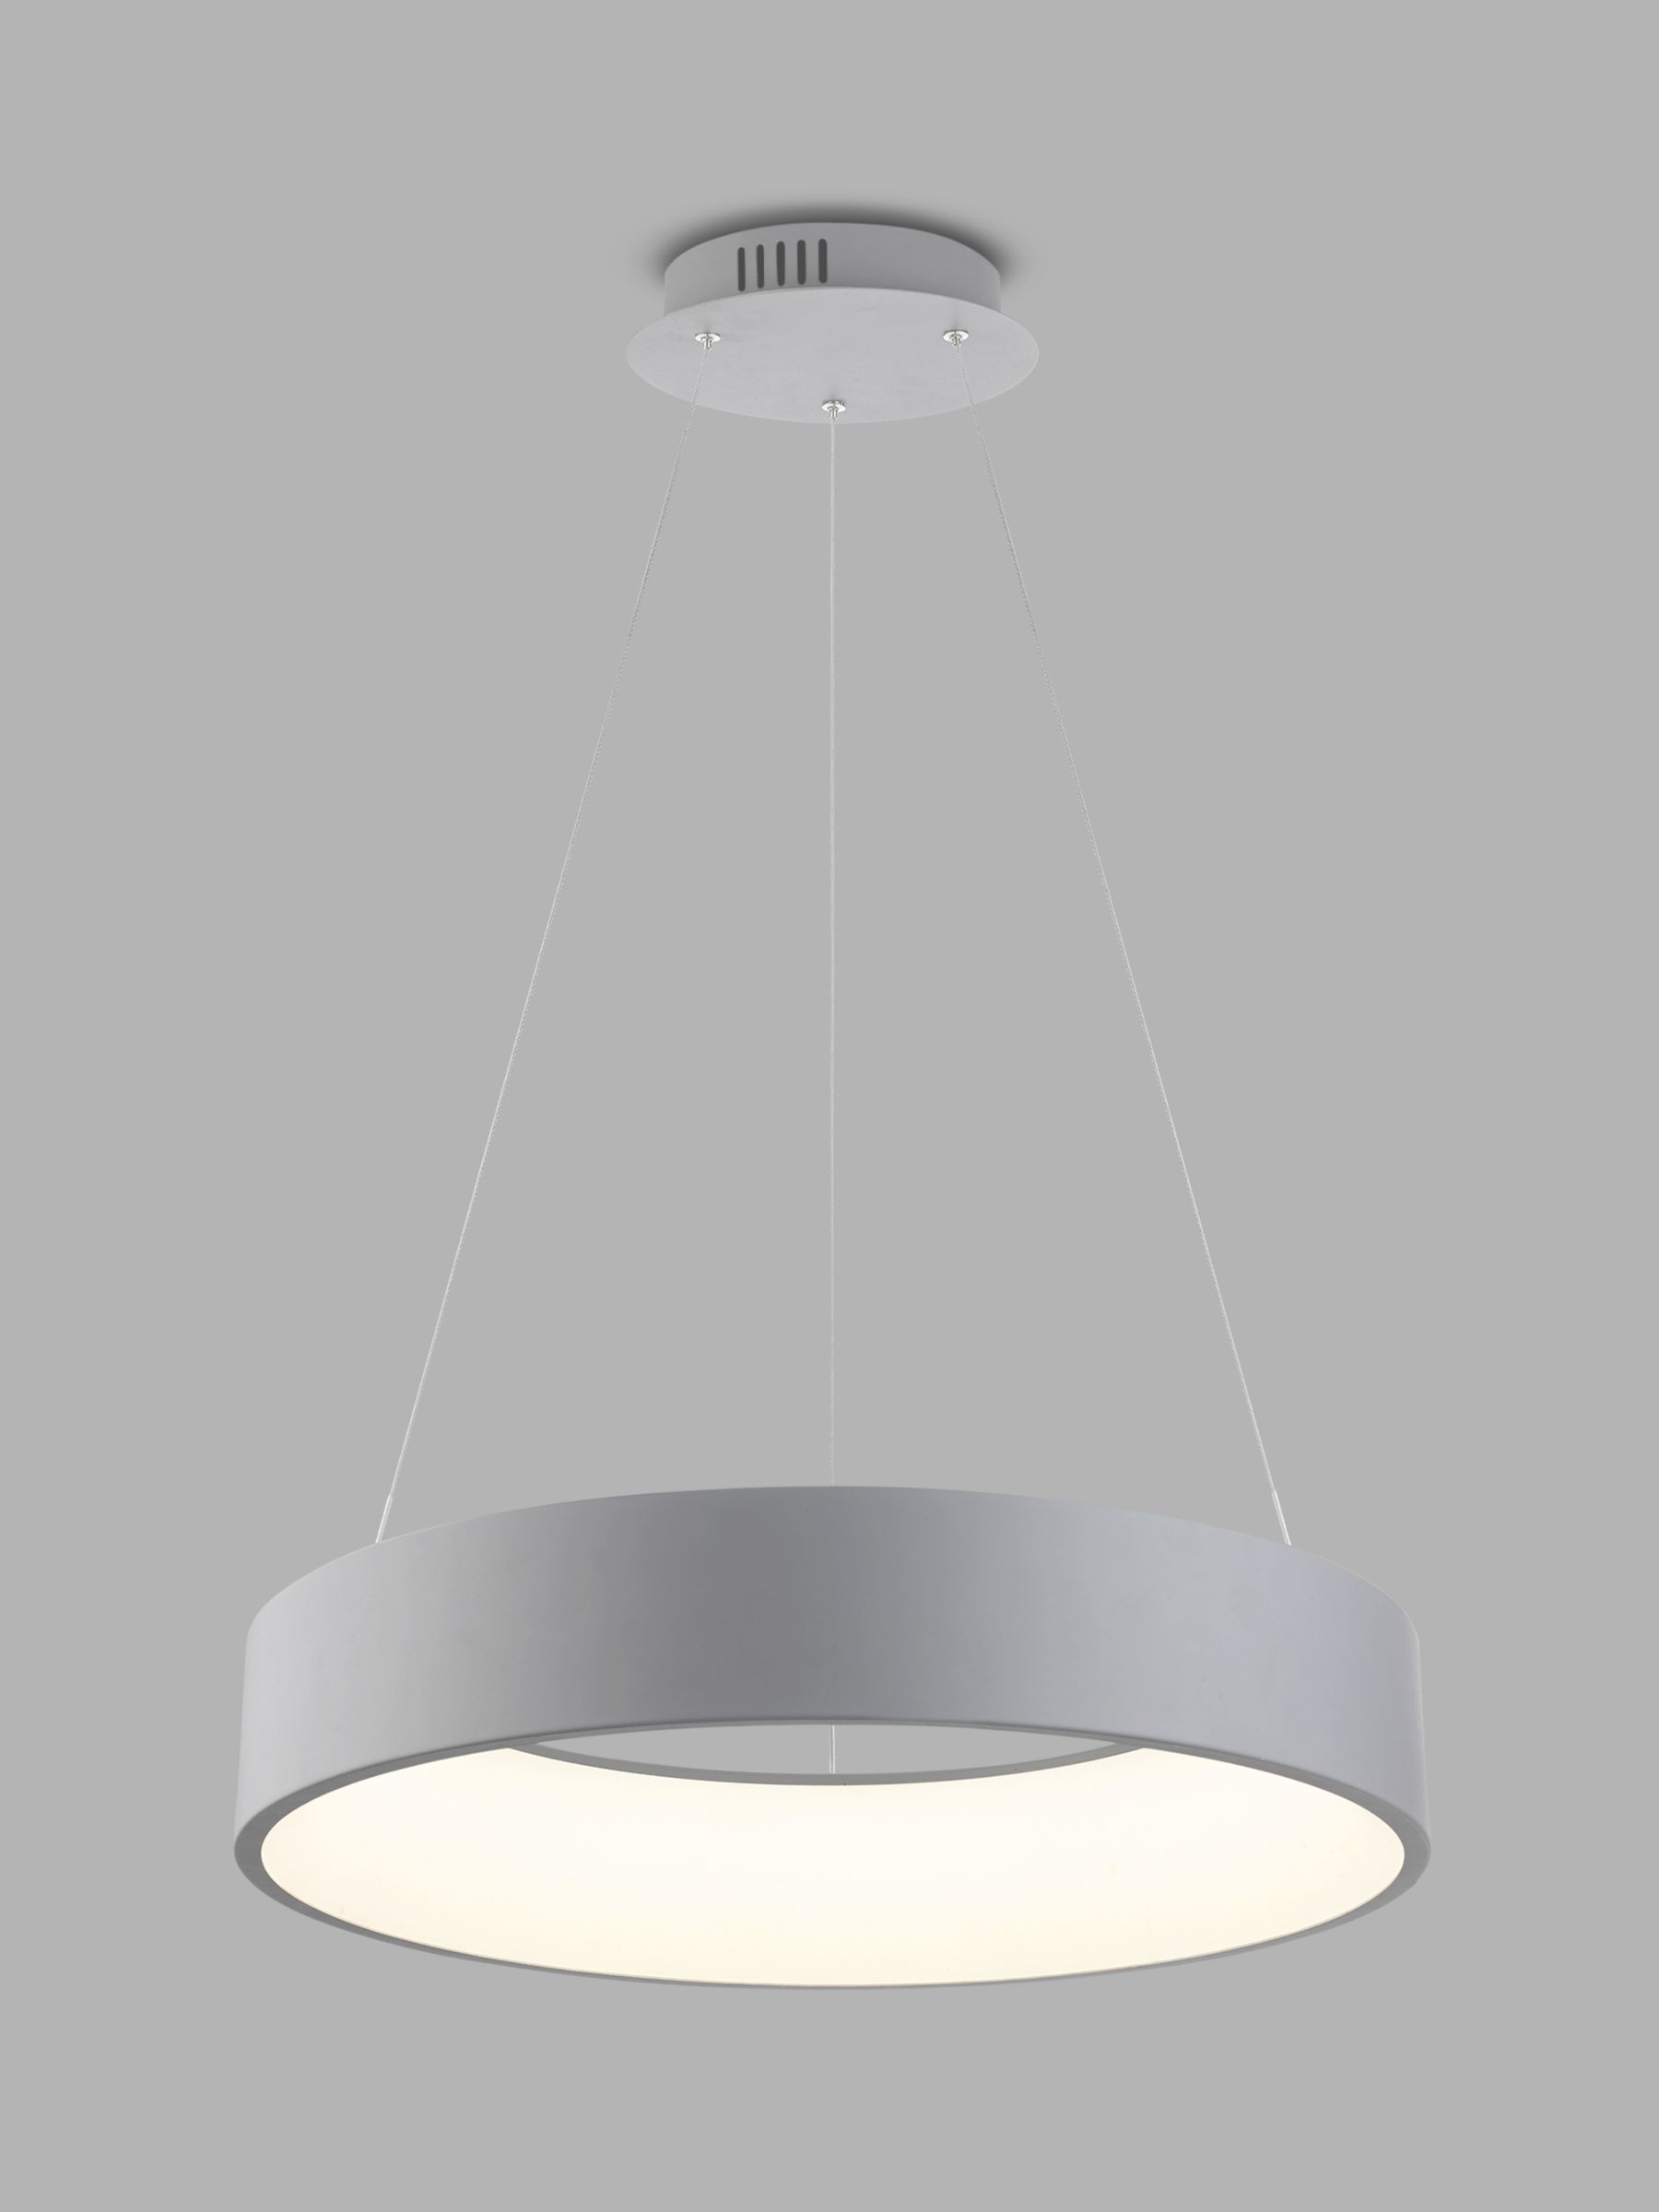 Ceiling Design Online Design Project By John Lewis No 132 Finn Led Hoop Ceiling Light